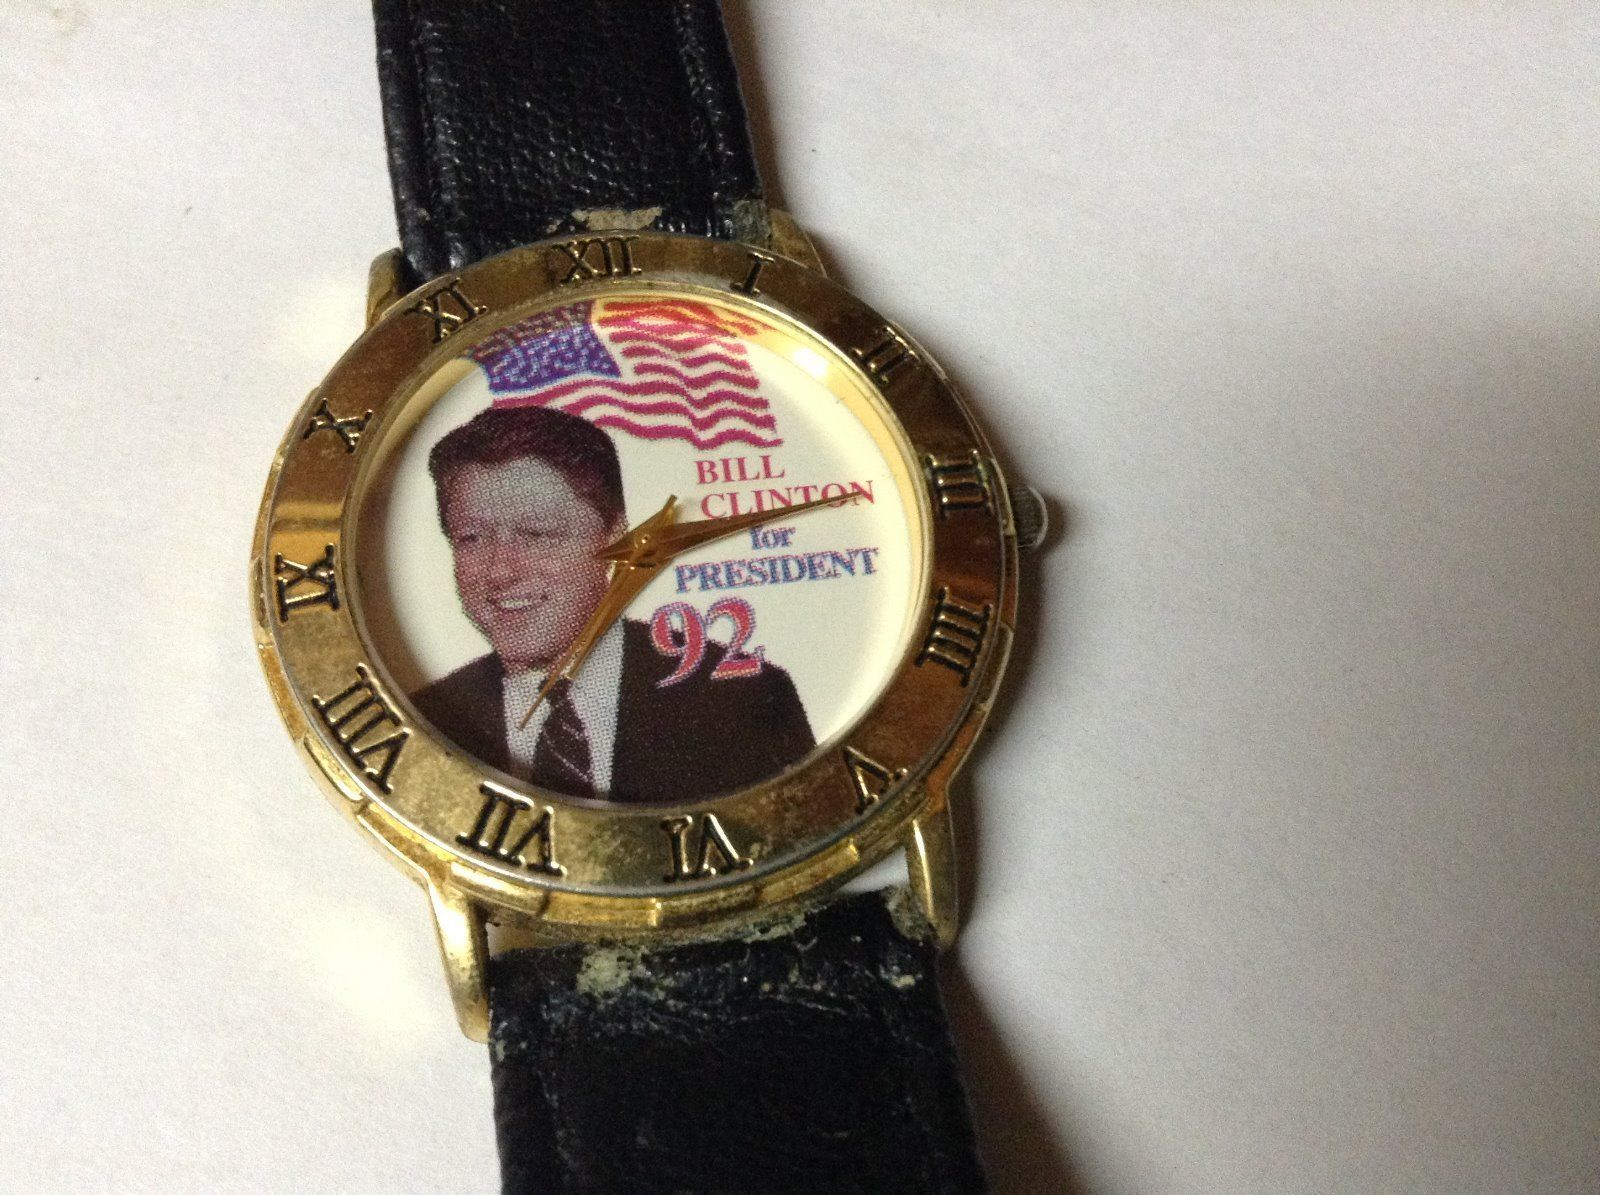 Bill Clinton for President 1982 Campaign Watch